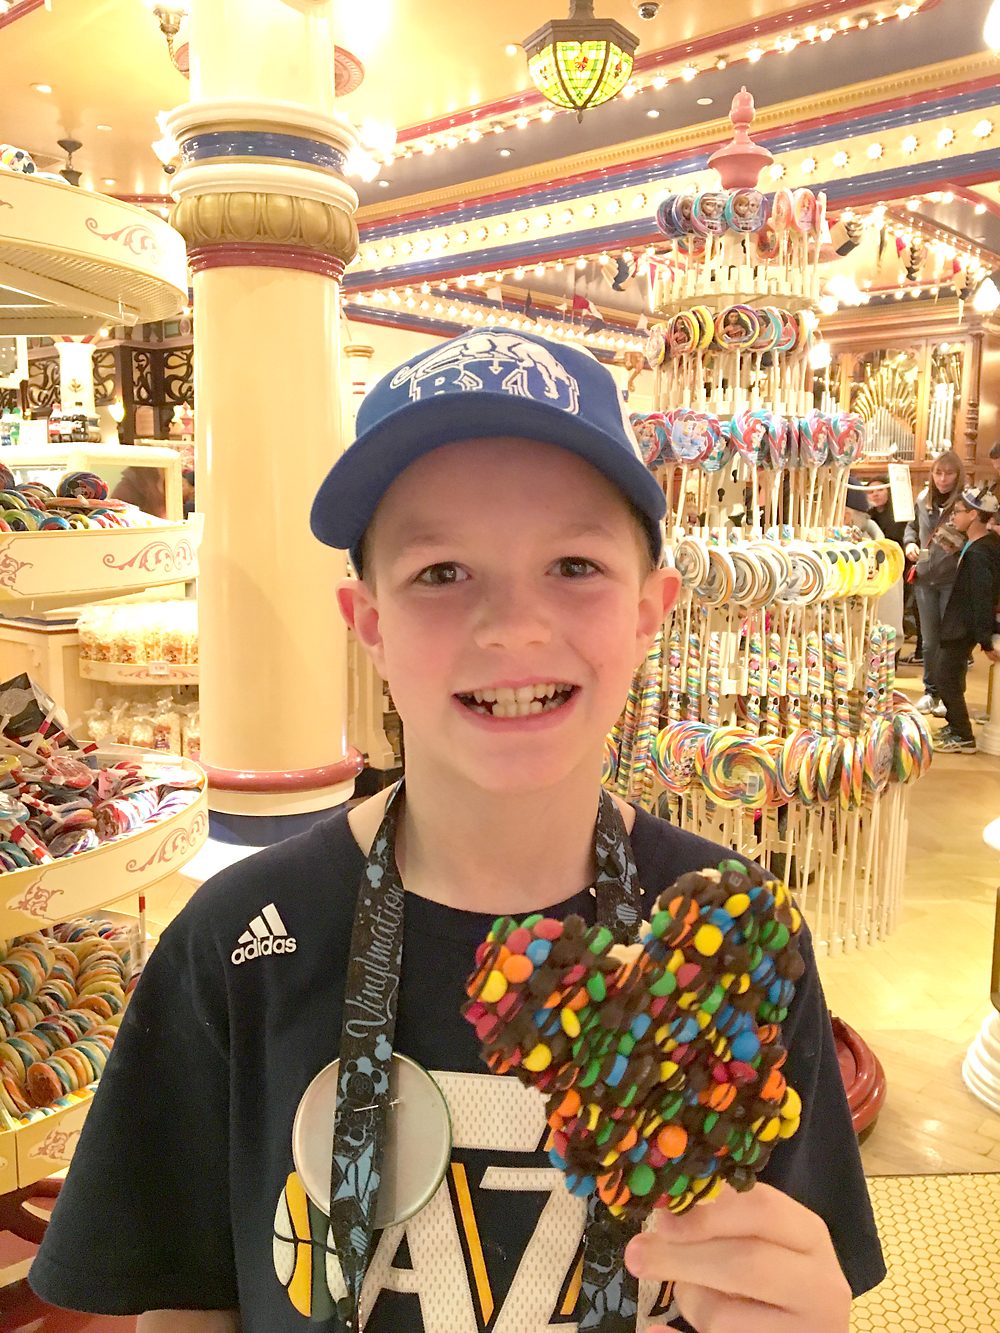 A boy holding a Mickey Mouse rice krispie treat at Disneyland